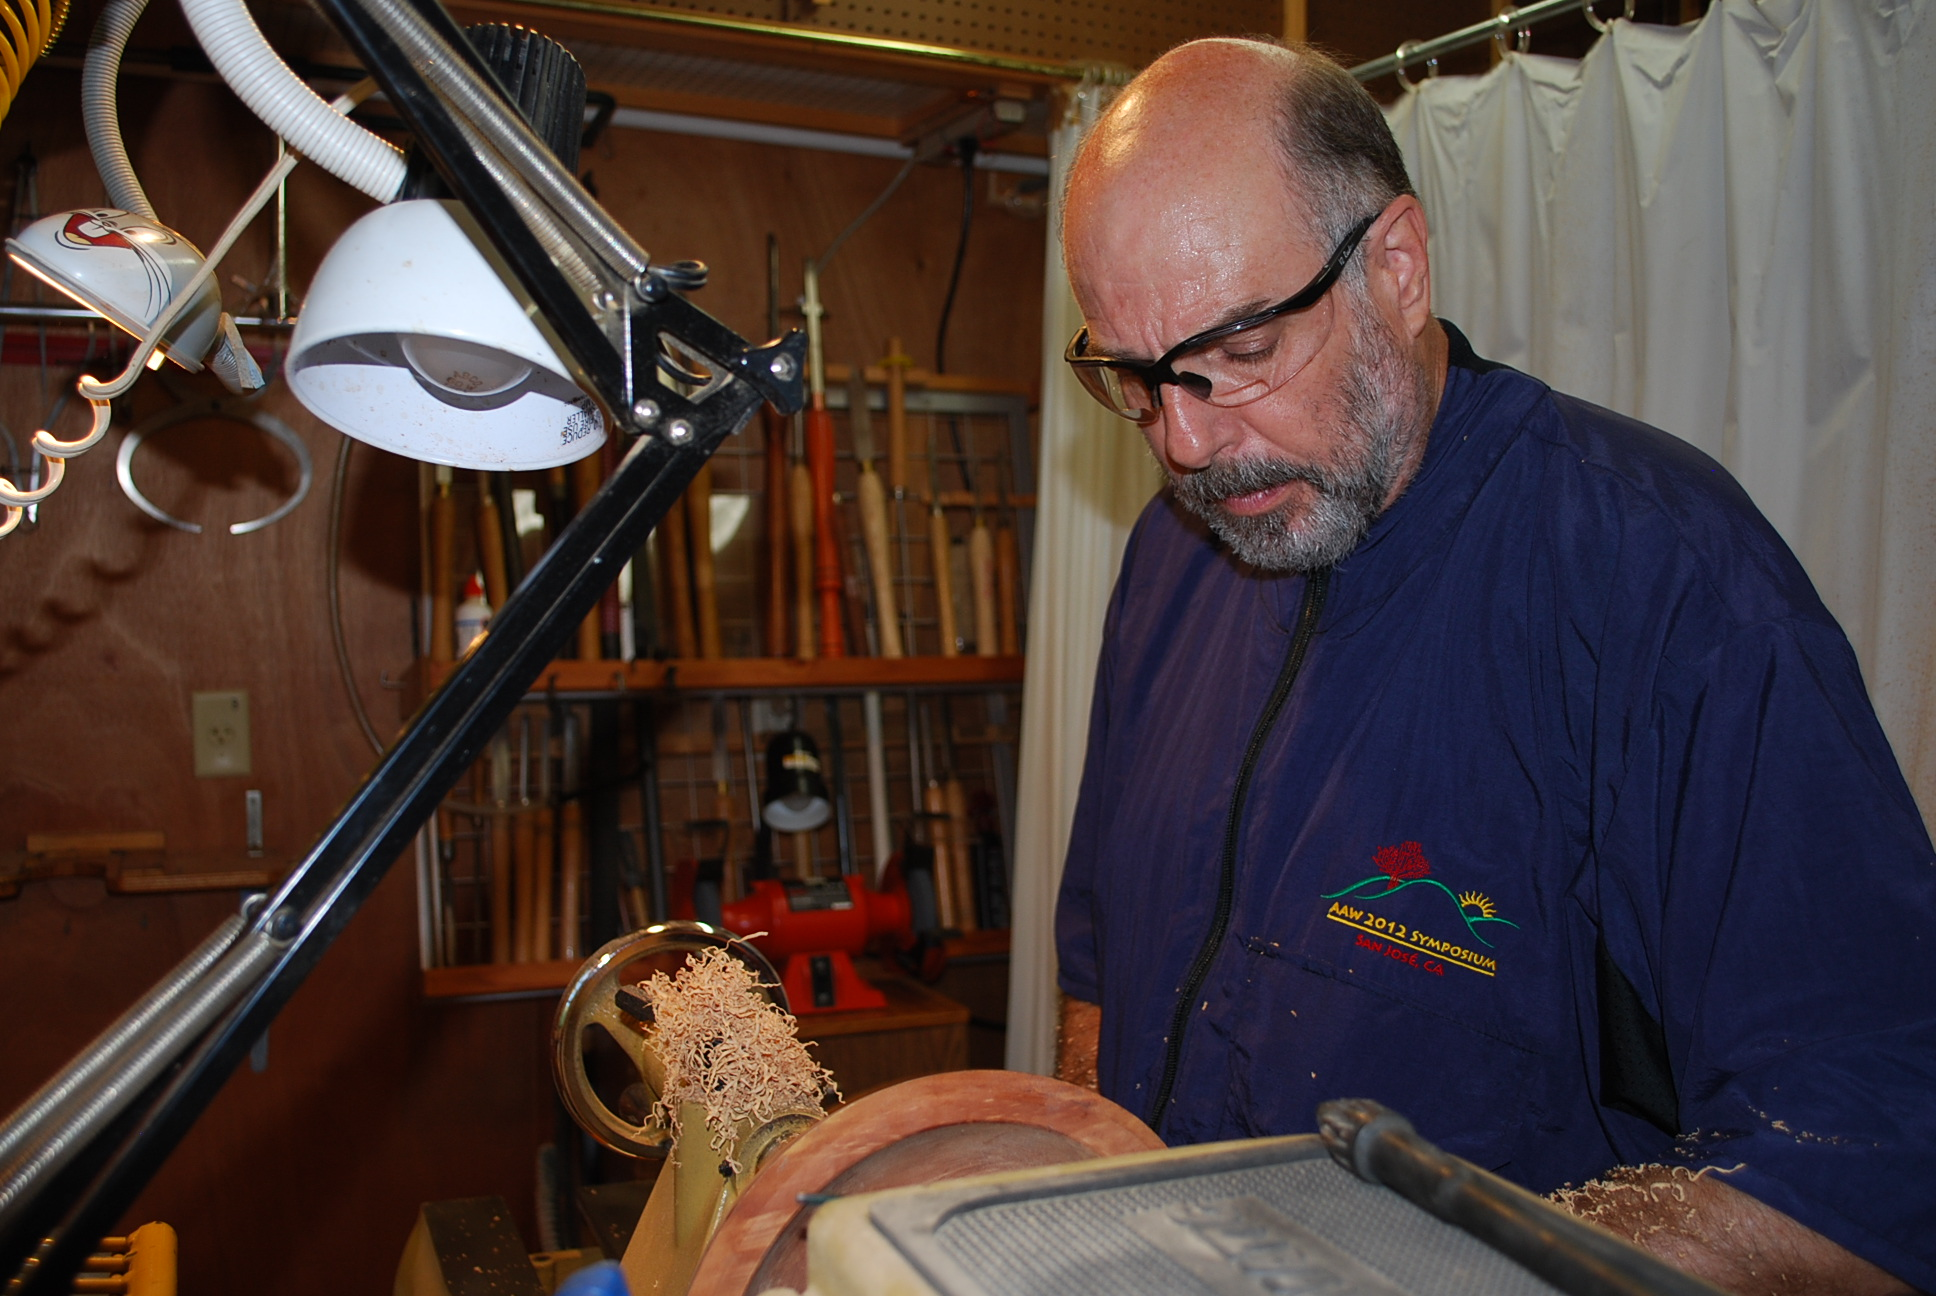 Terry working at the lathe.